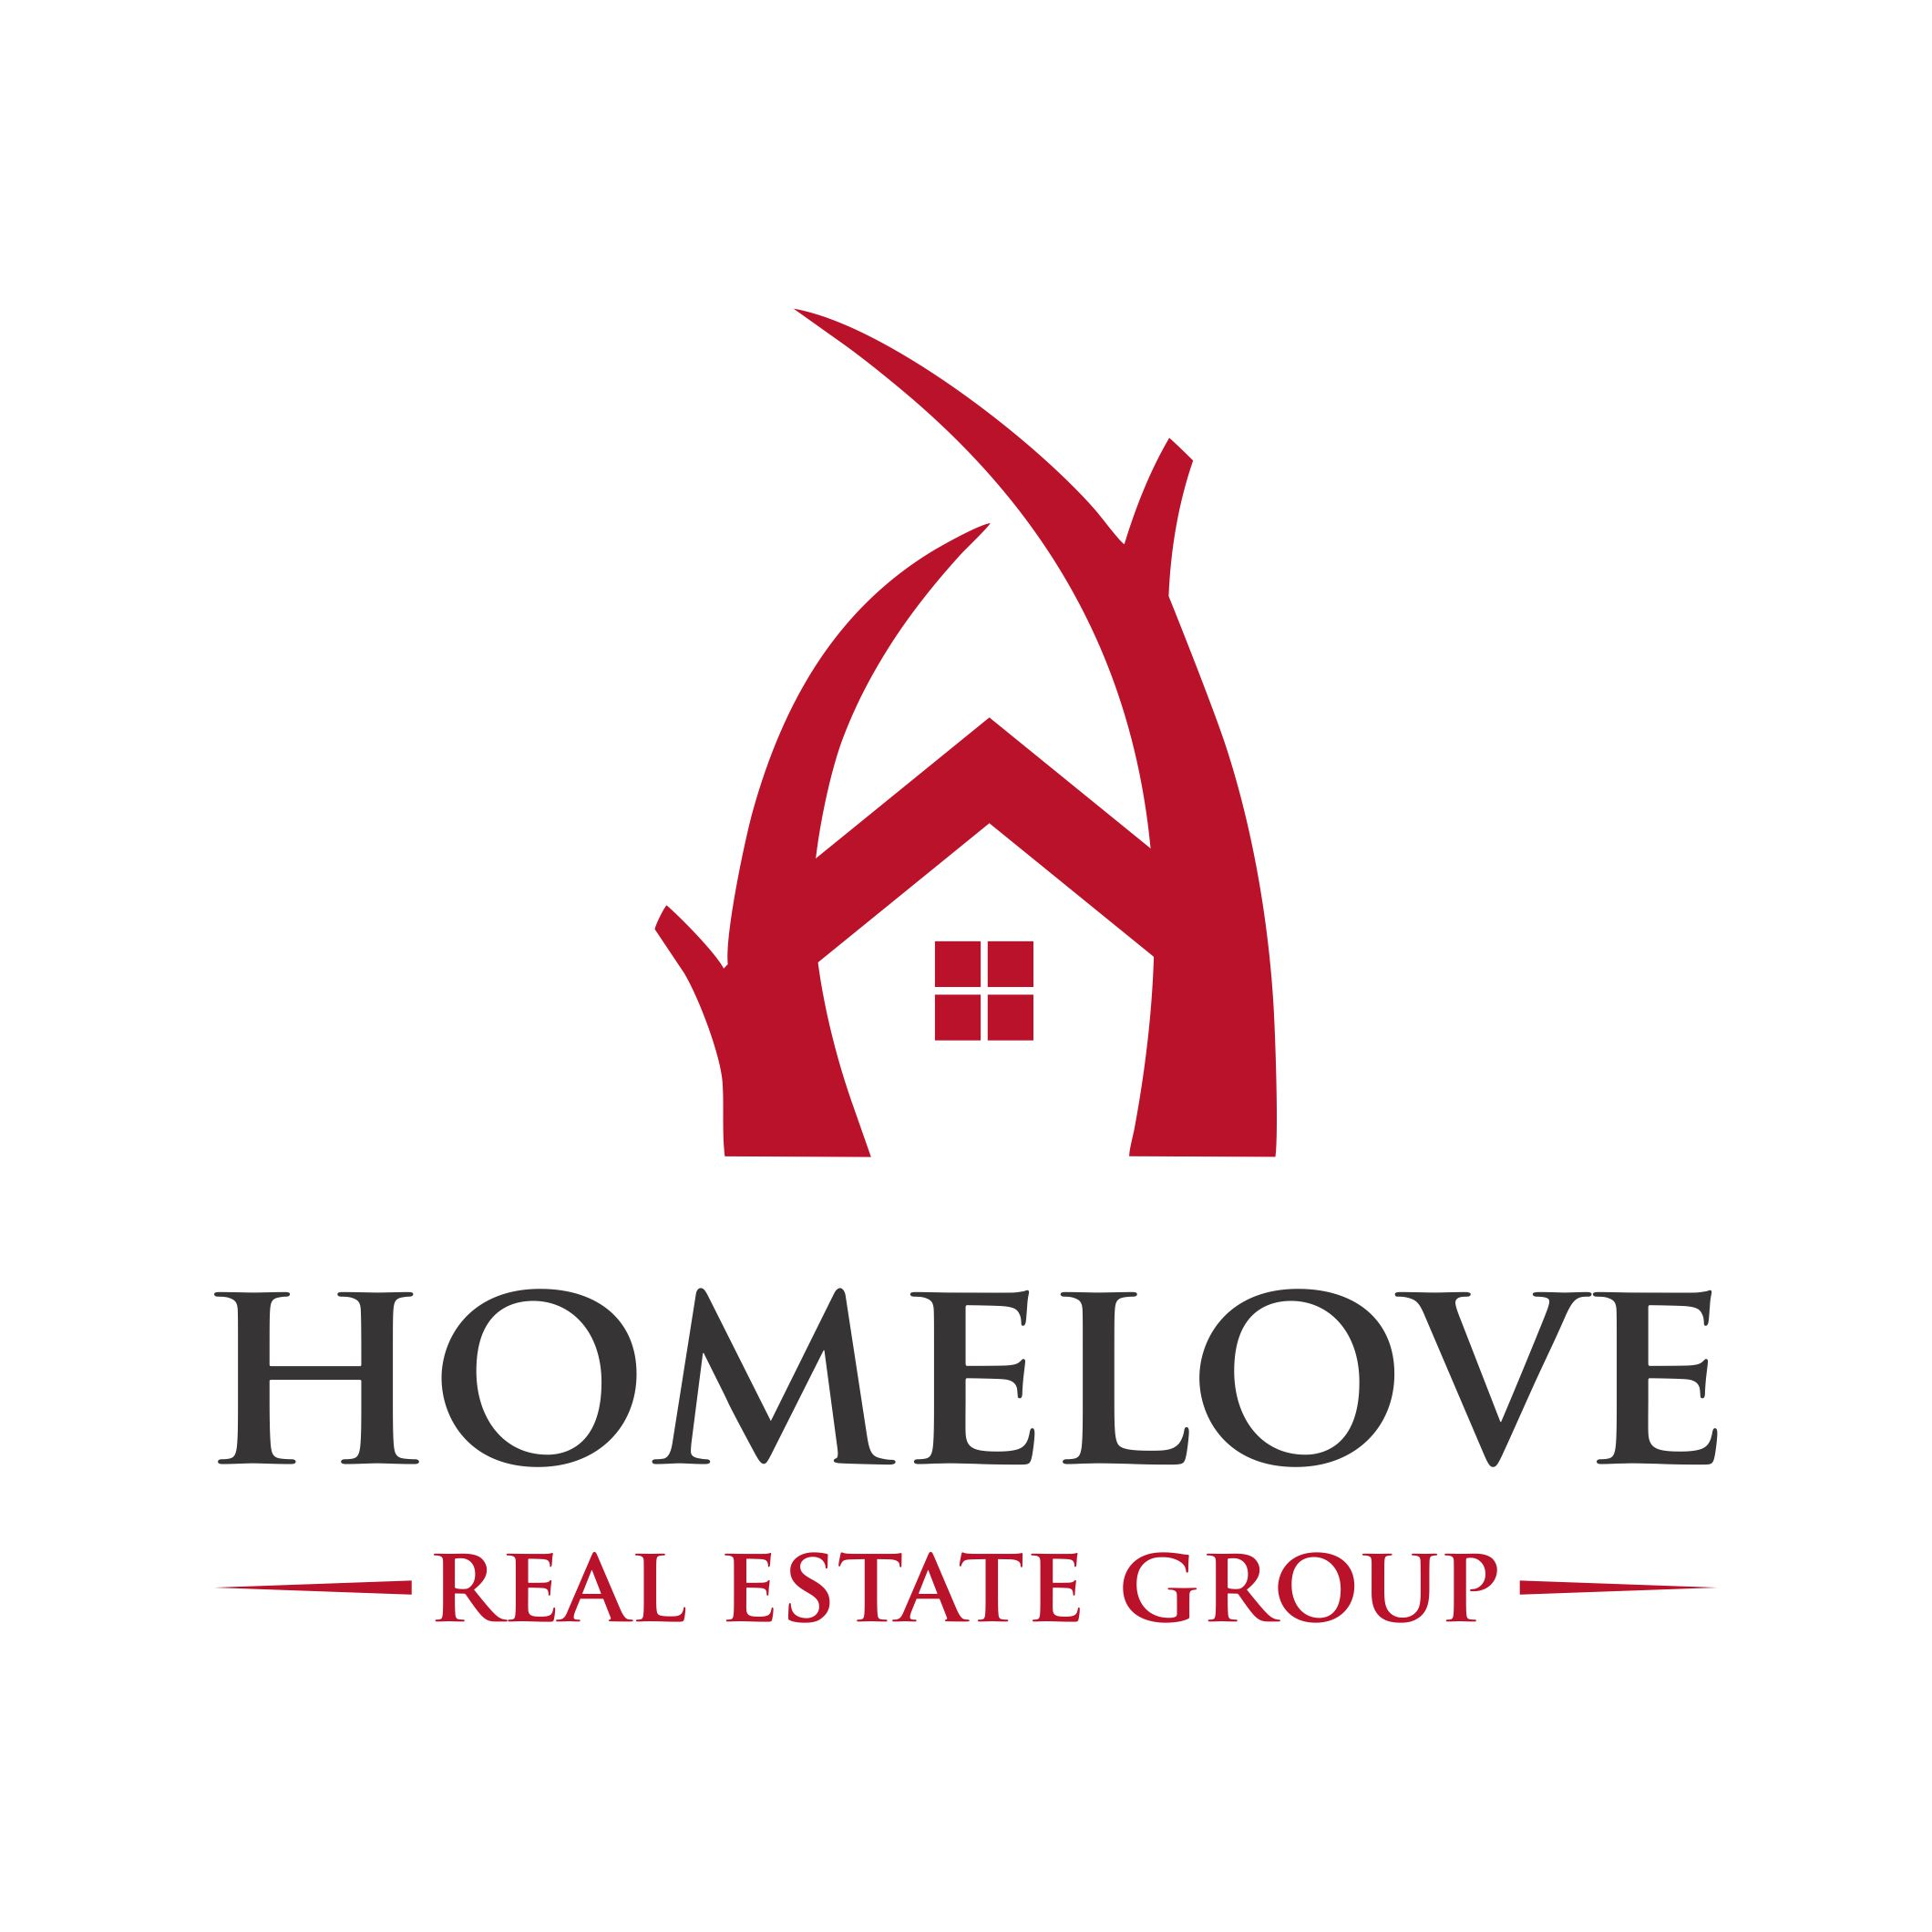 Homelove Real Estate Group logo